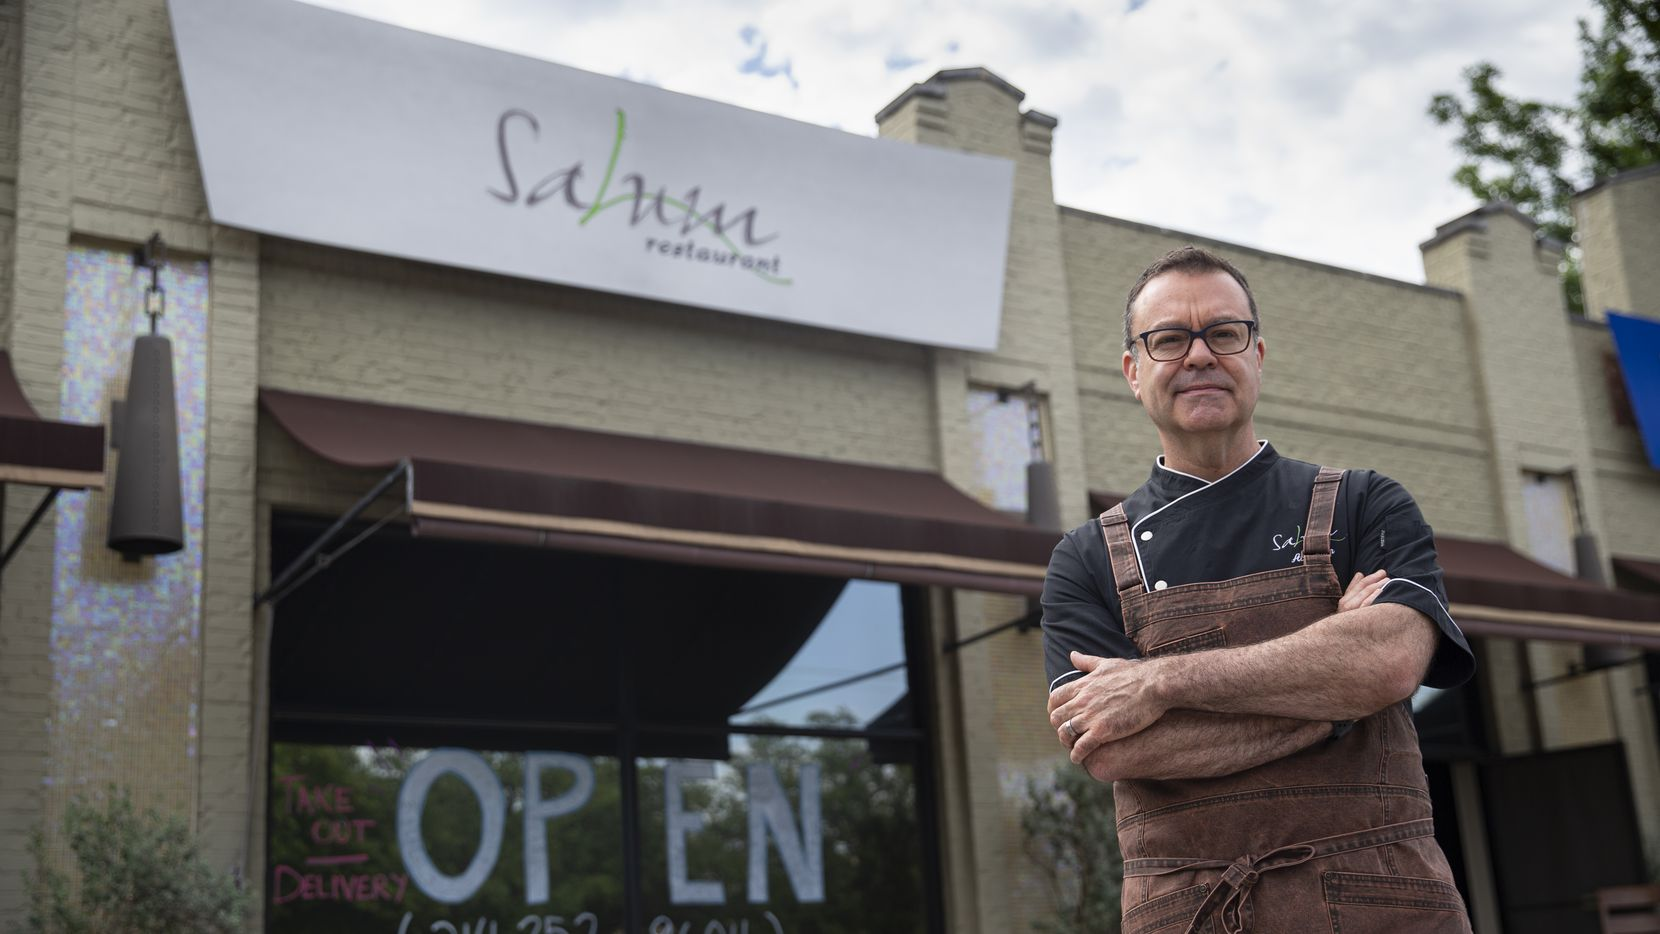 Chef Abraham Salum stands outside of Salum restaurant on Cole Avenue on May 7, 2020 in Dallas. Salum was shocked and surprised to learn that his insurance company would not pay his business interruption claim.